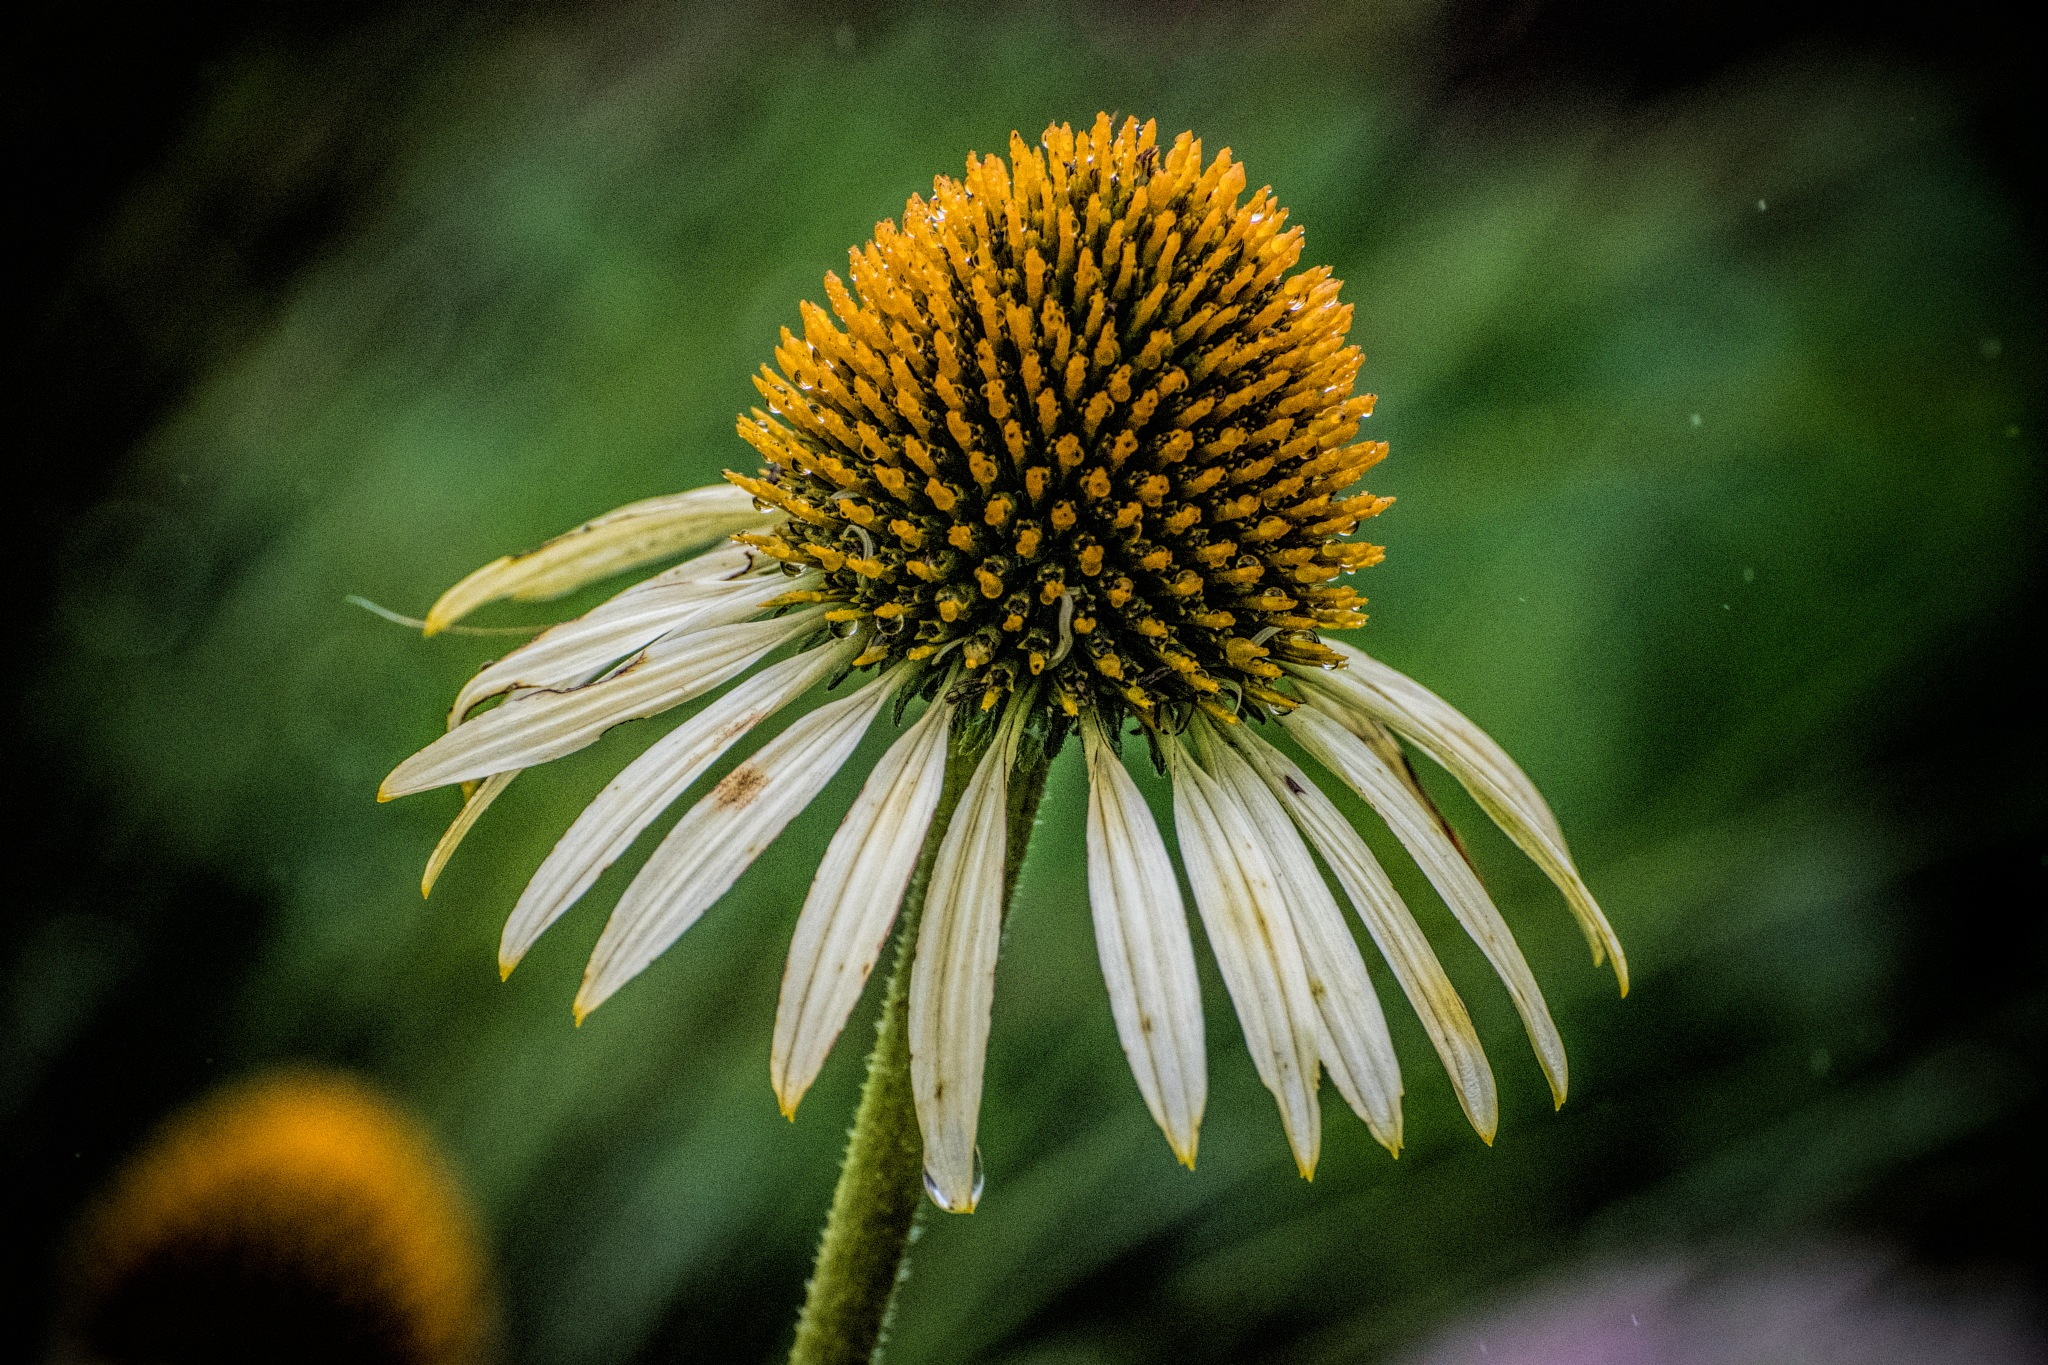 Flower 9-2-10 by JohnEllingson